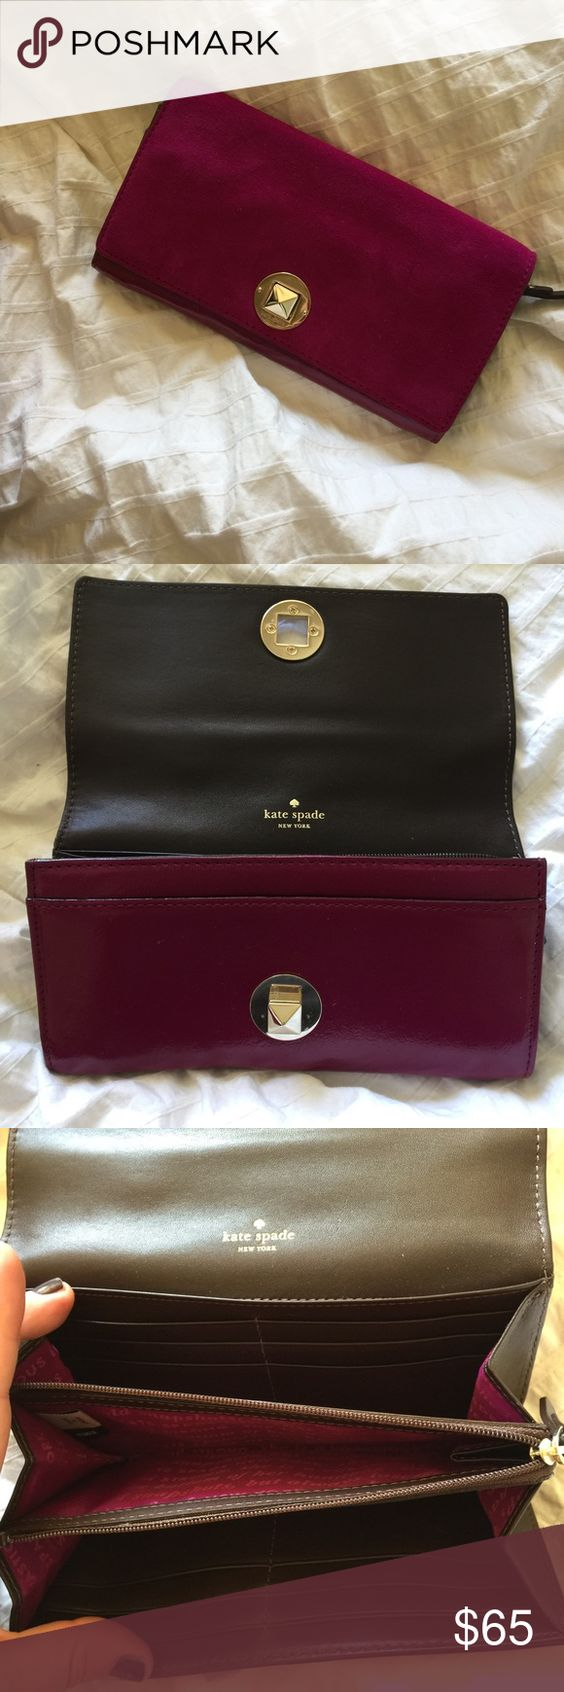 Kate spade wallet Brand new never used Kate spade purple/fuscia suede wallet. Lots of compartments for cards, cash, coins. Soft suede in perfect condition. Selling matching purse as well. kate spade Bags Wallets